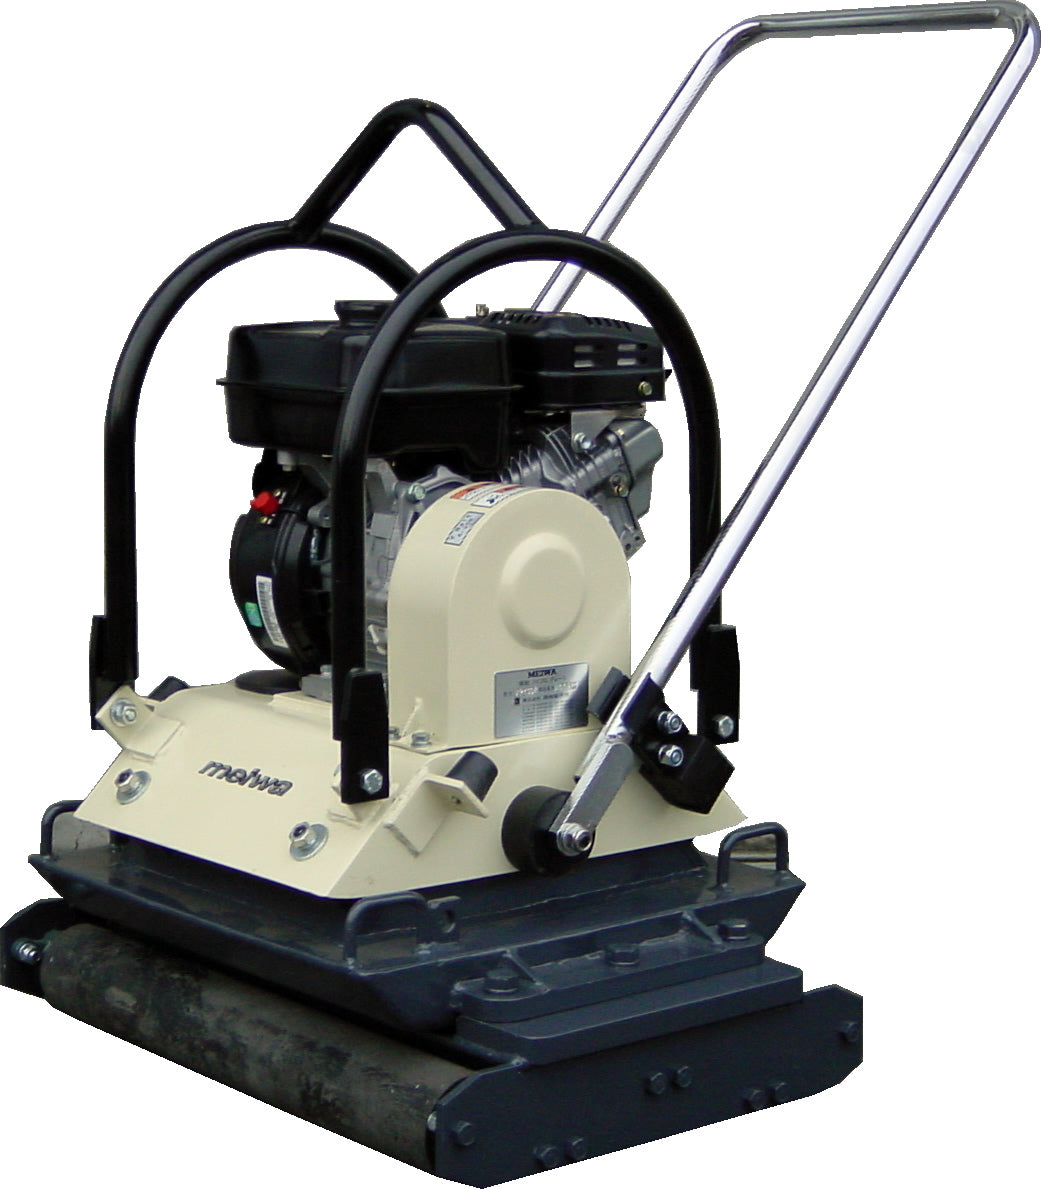 VP100R Plate Compactor